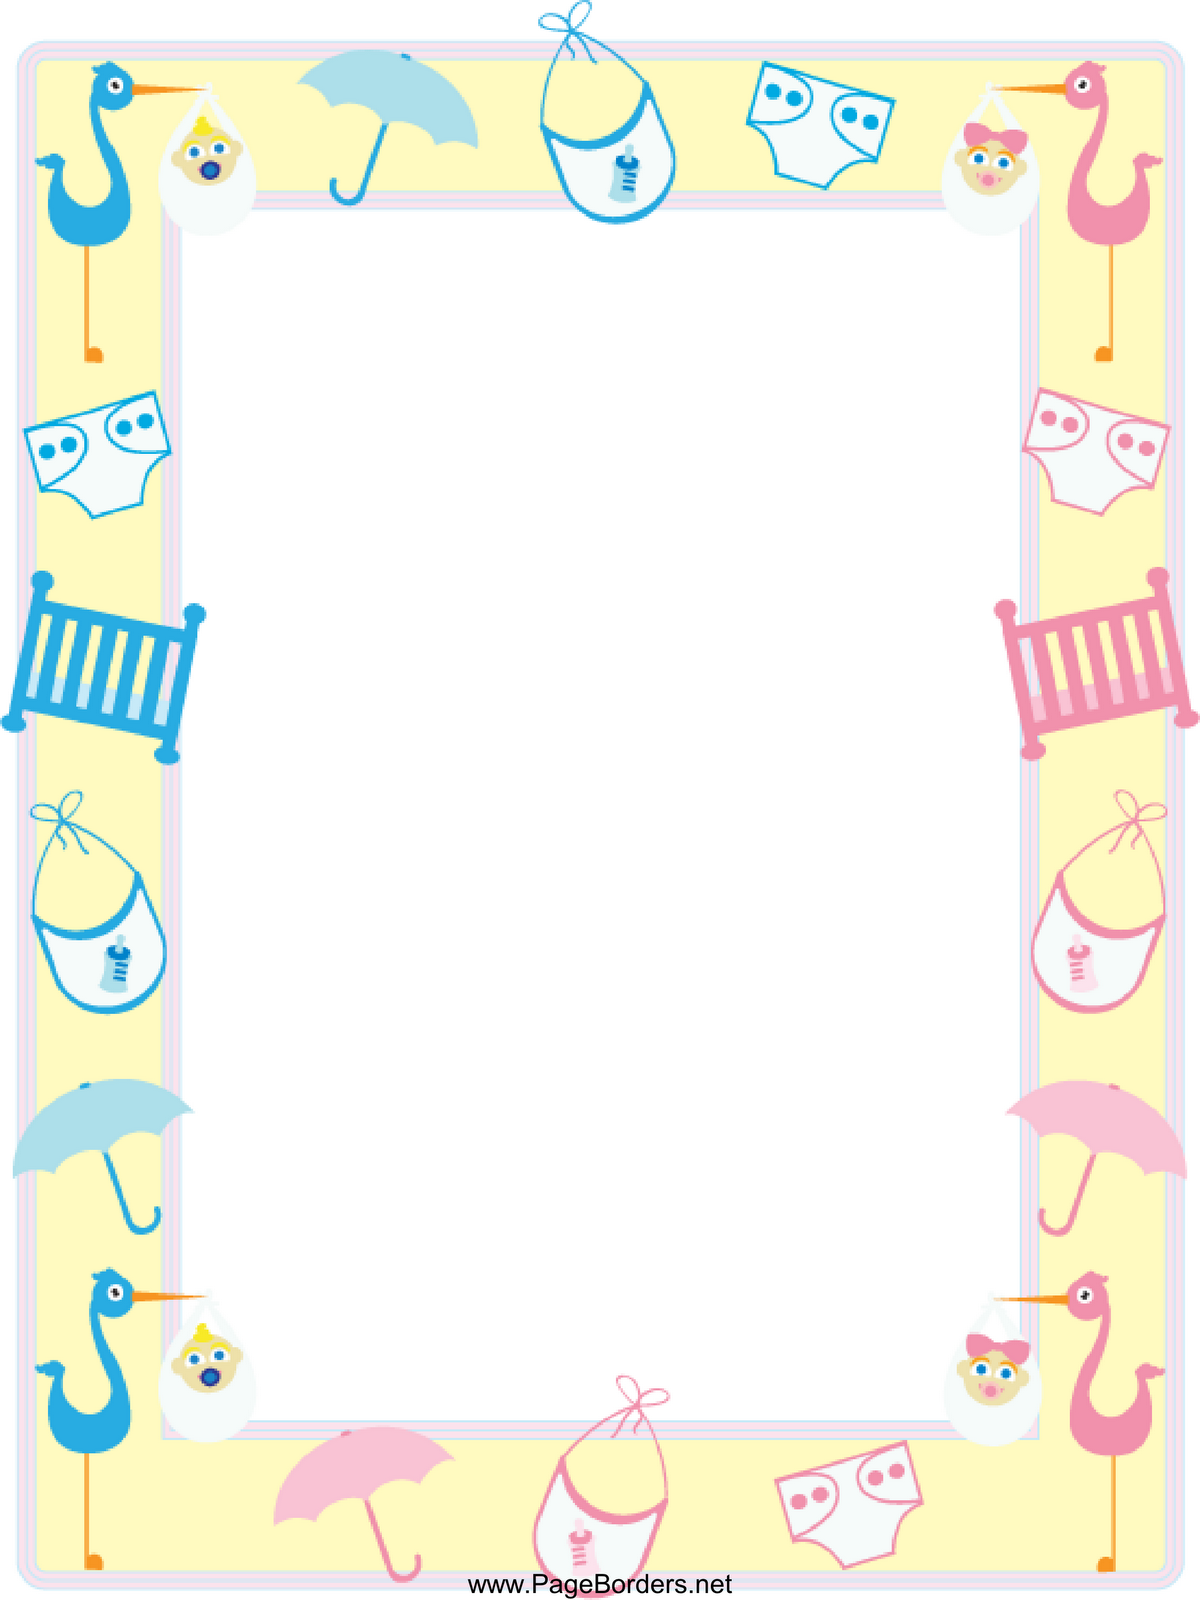 Baby shower borders clip art image royalty free Free baby shower clipart borders - ClipartFest image royalty free